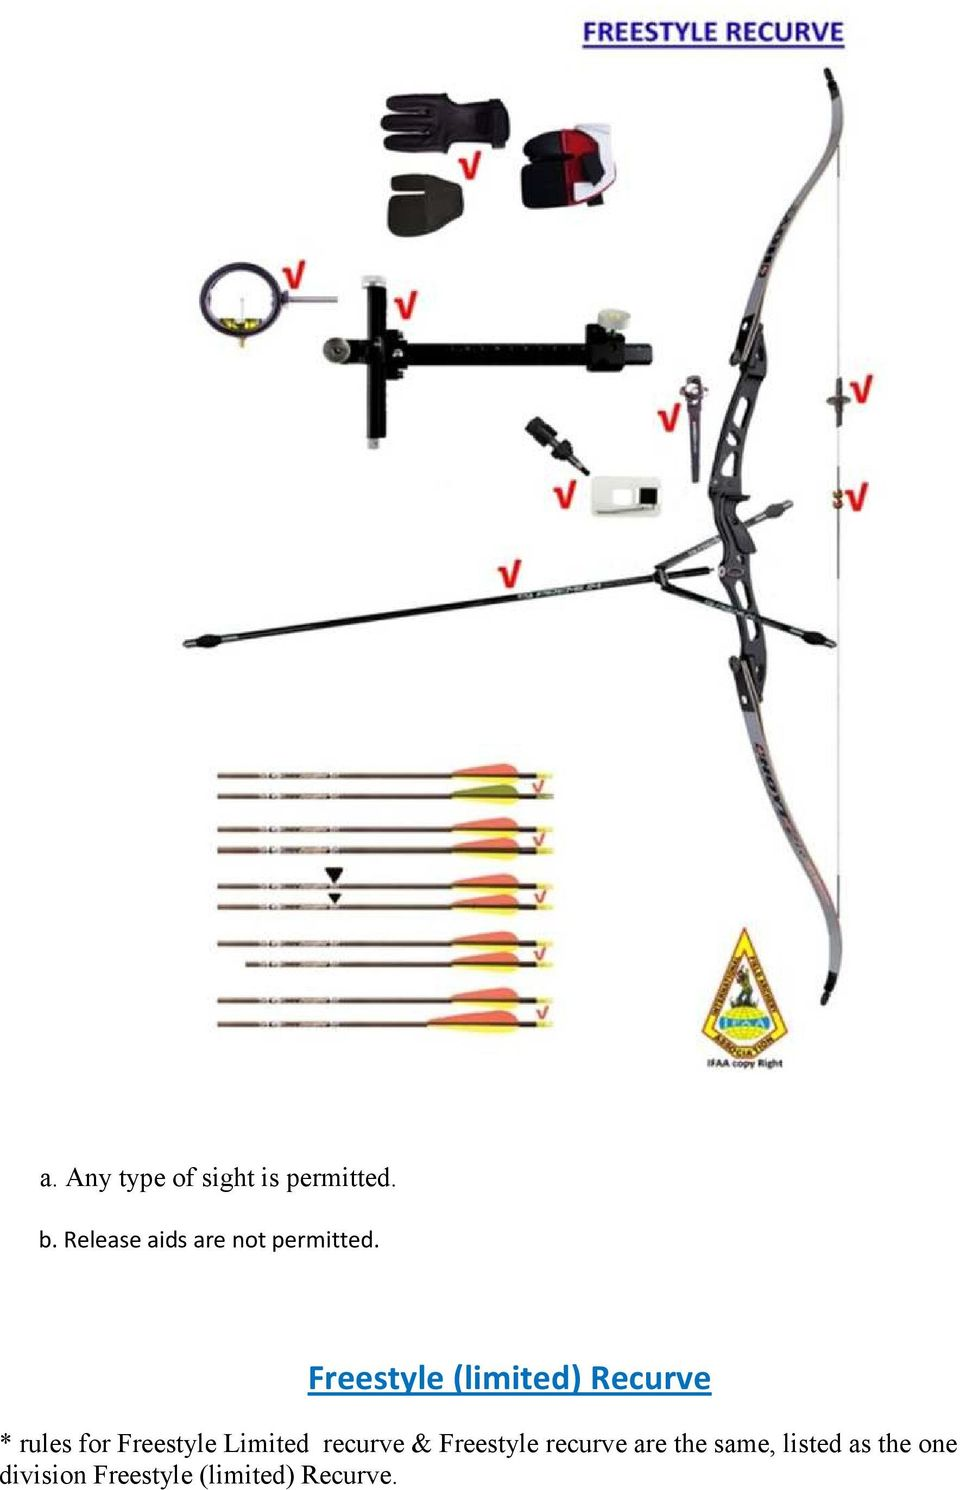 Freestyle (limited) Recurve * rules for Freestyle